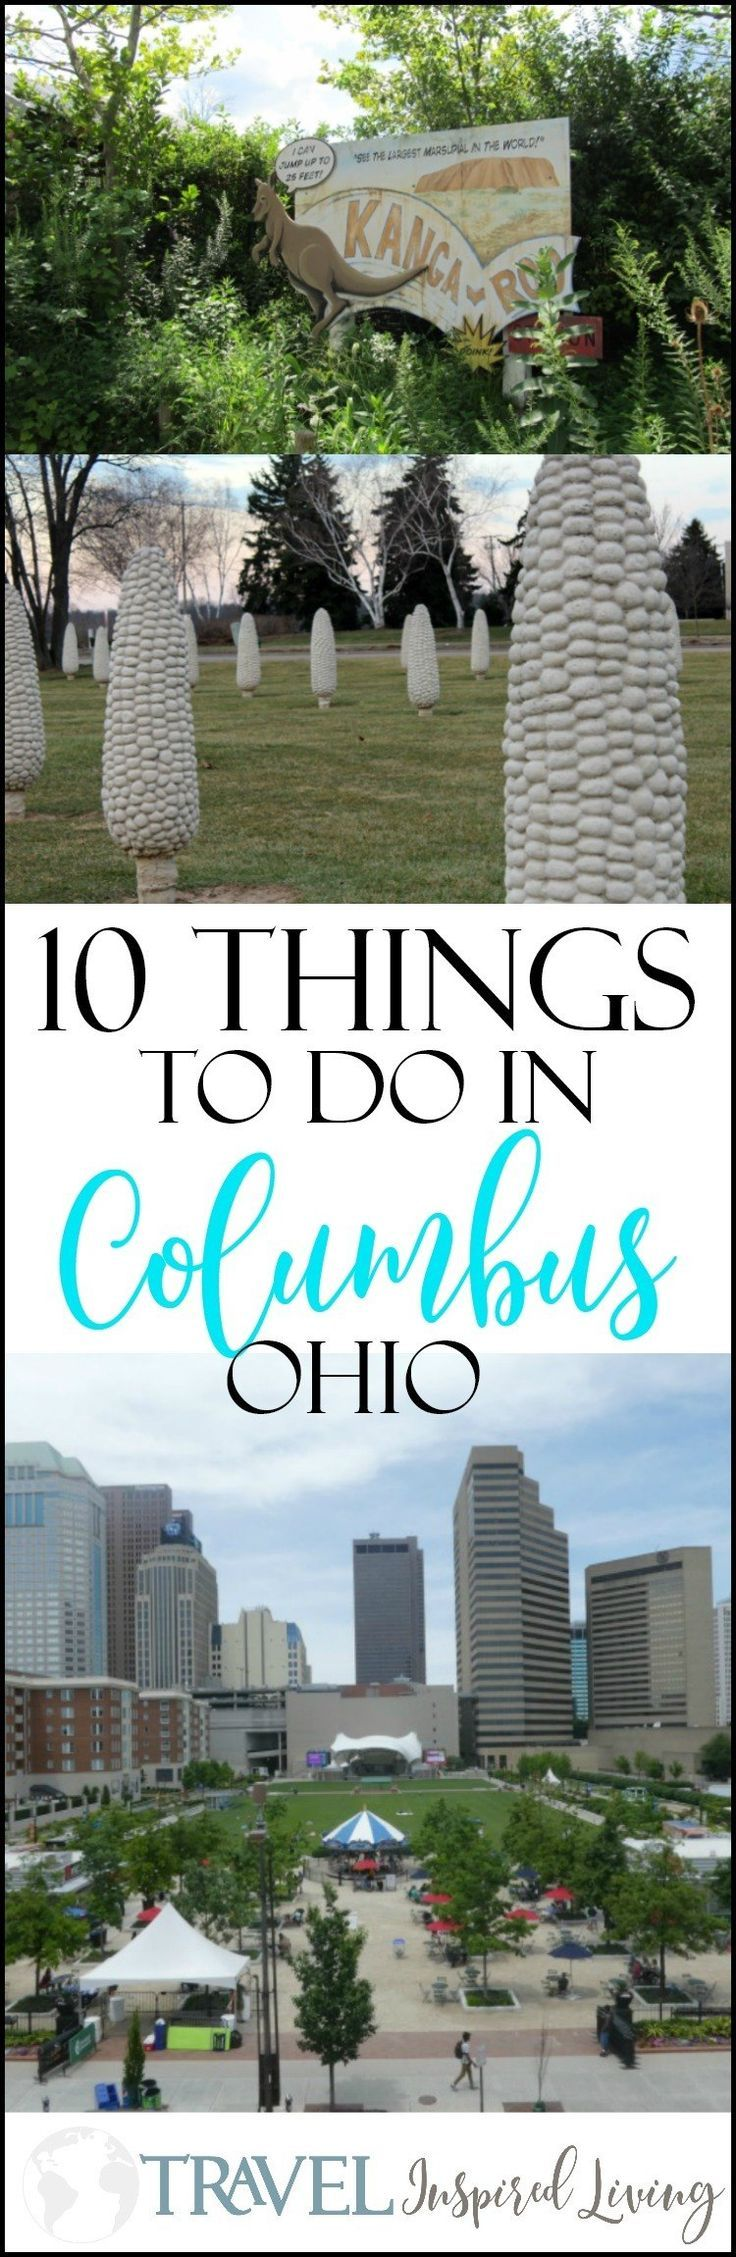 10 Things to do in Columbus Ohio with the family from the #zoo, to new dinosaur exhibit at #COSI to #free days at the art museum. Spending time in #Columbus #Ohio? We have the insider info on #attractions #activities and #fun.  #thingstodo #travel #withkids #family #adventure